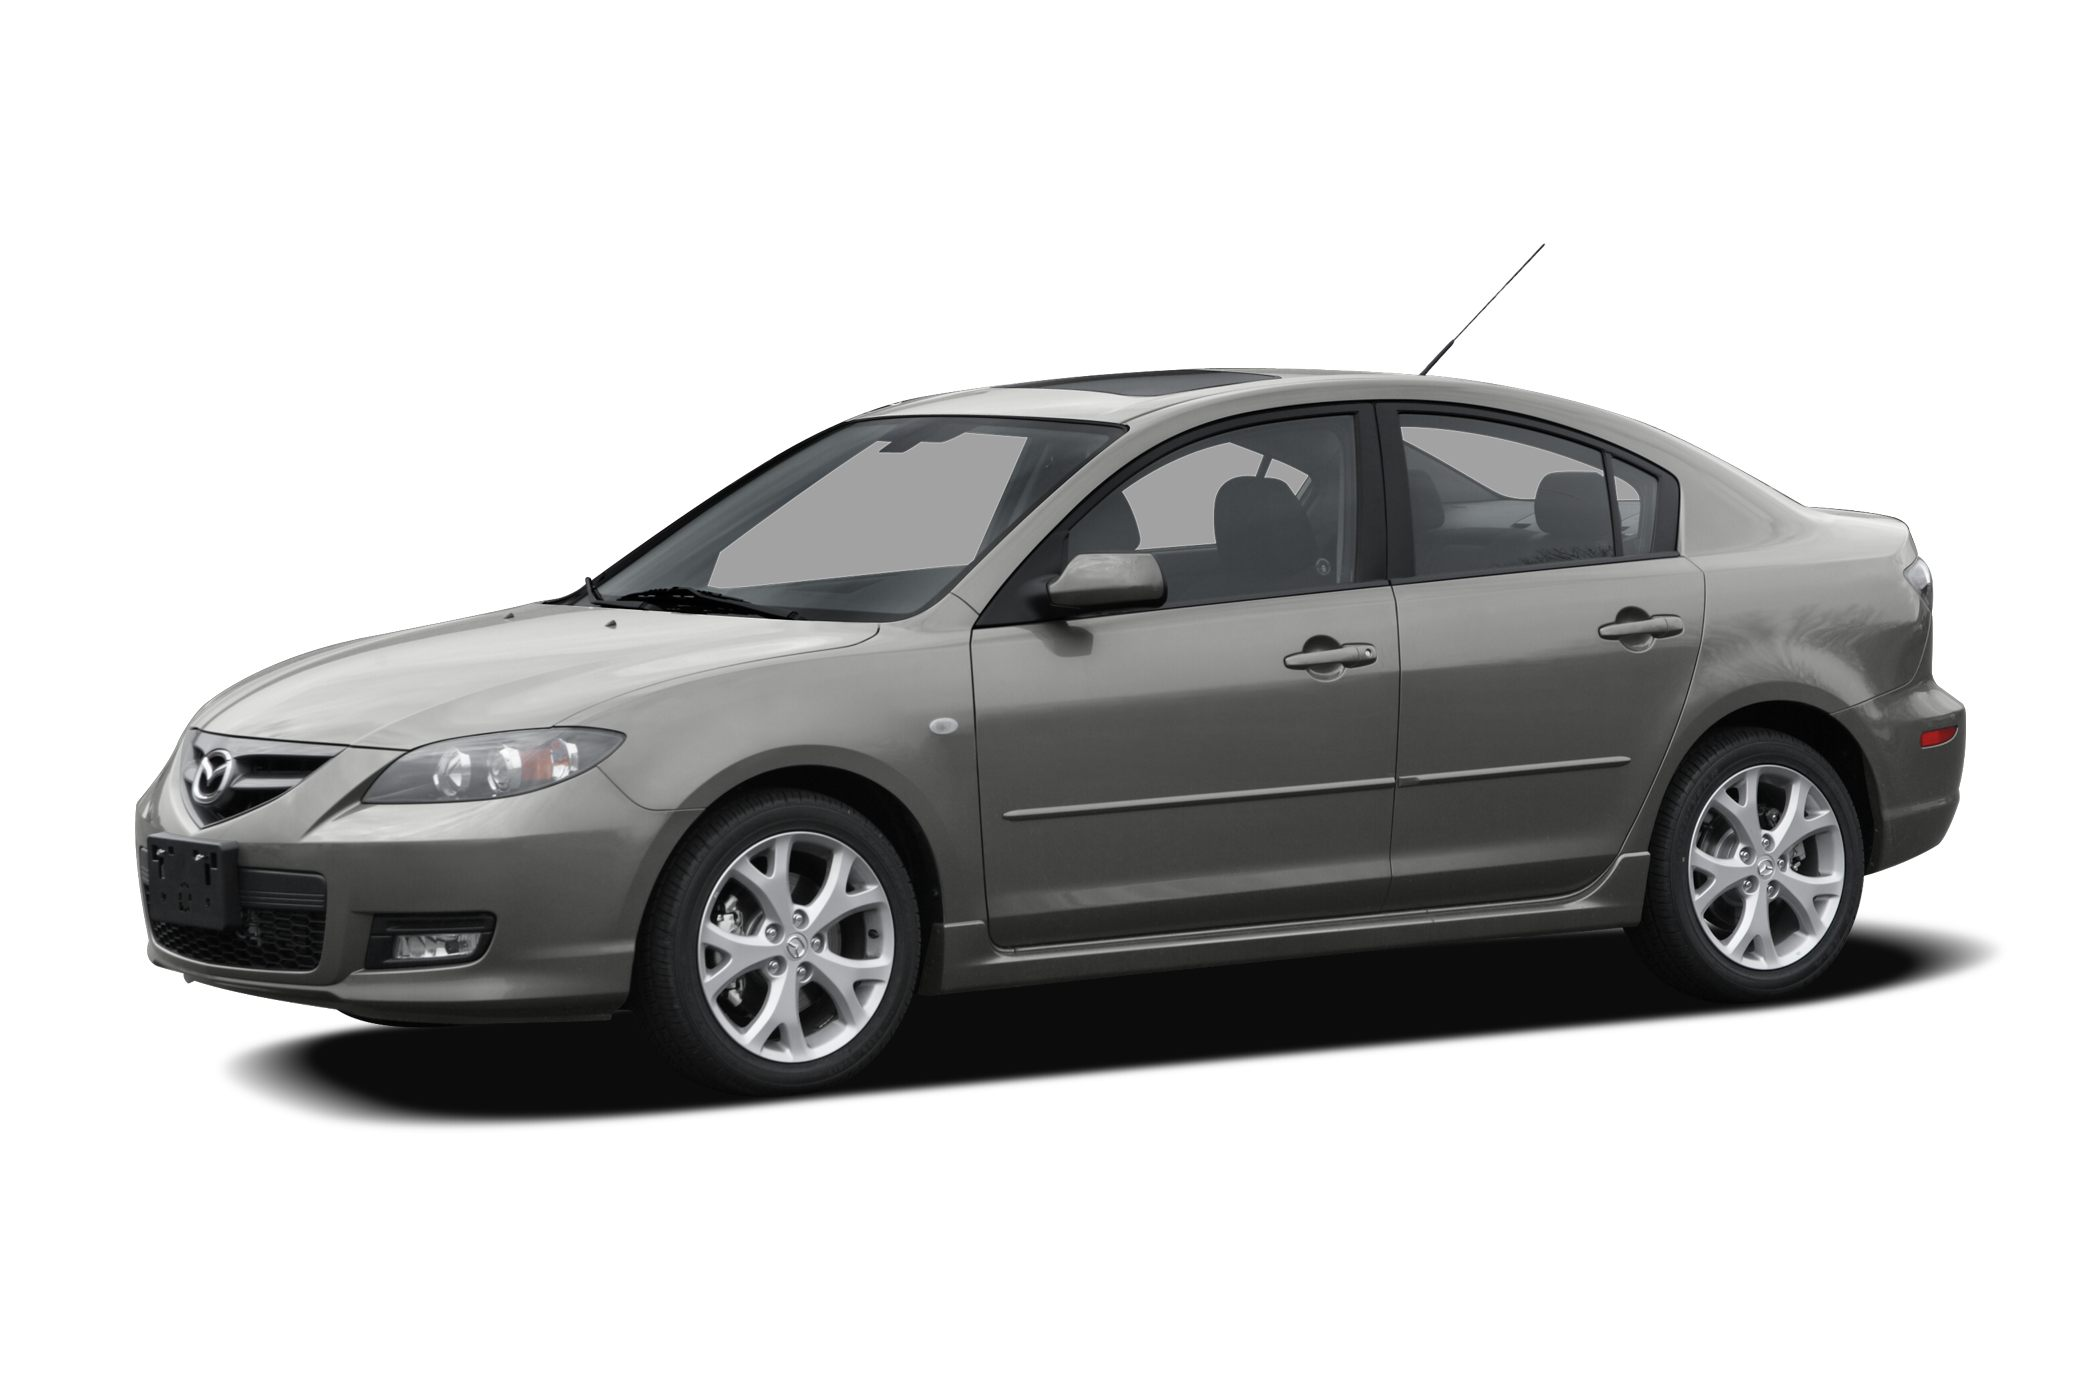 2007 Mazda Mazda3 I Touring Sedan for sale in Norwich for $9,984 with 64,277 miles